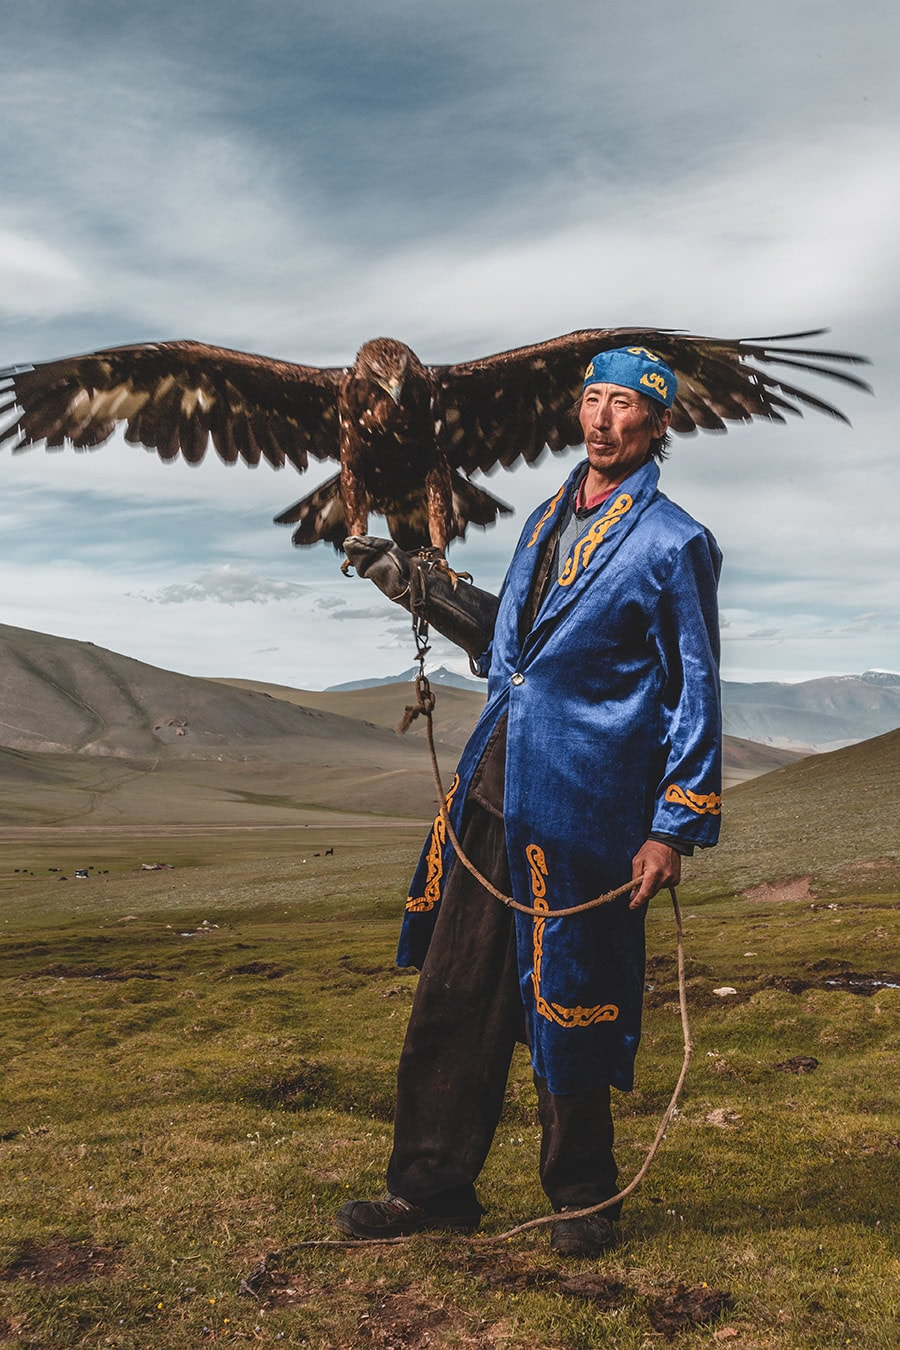 A Kazak eagle hunter poses with Tsambagarav Uul in the background.